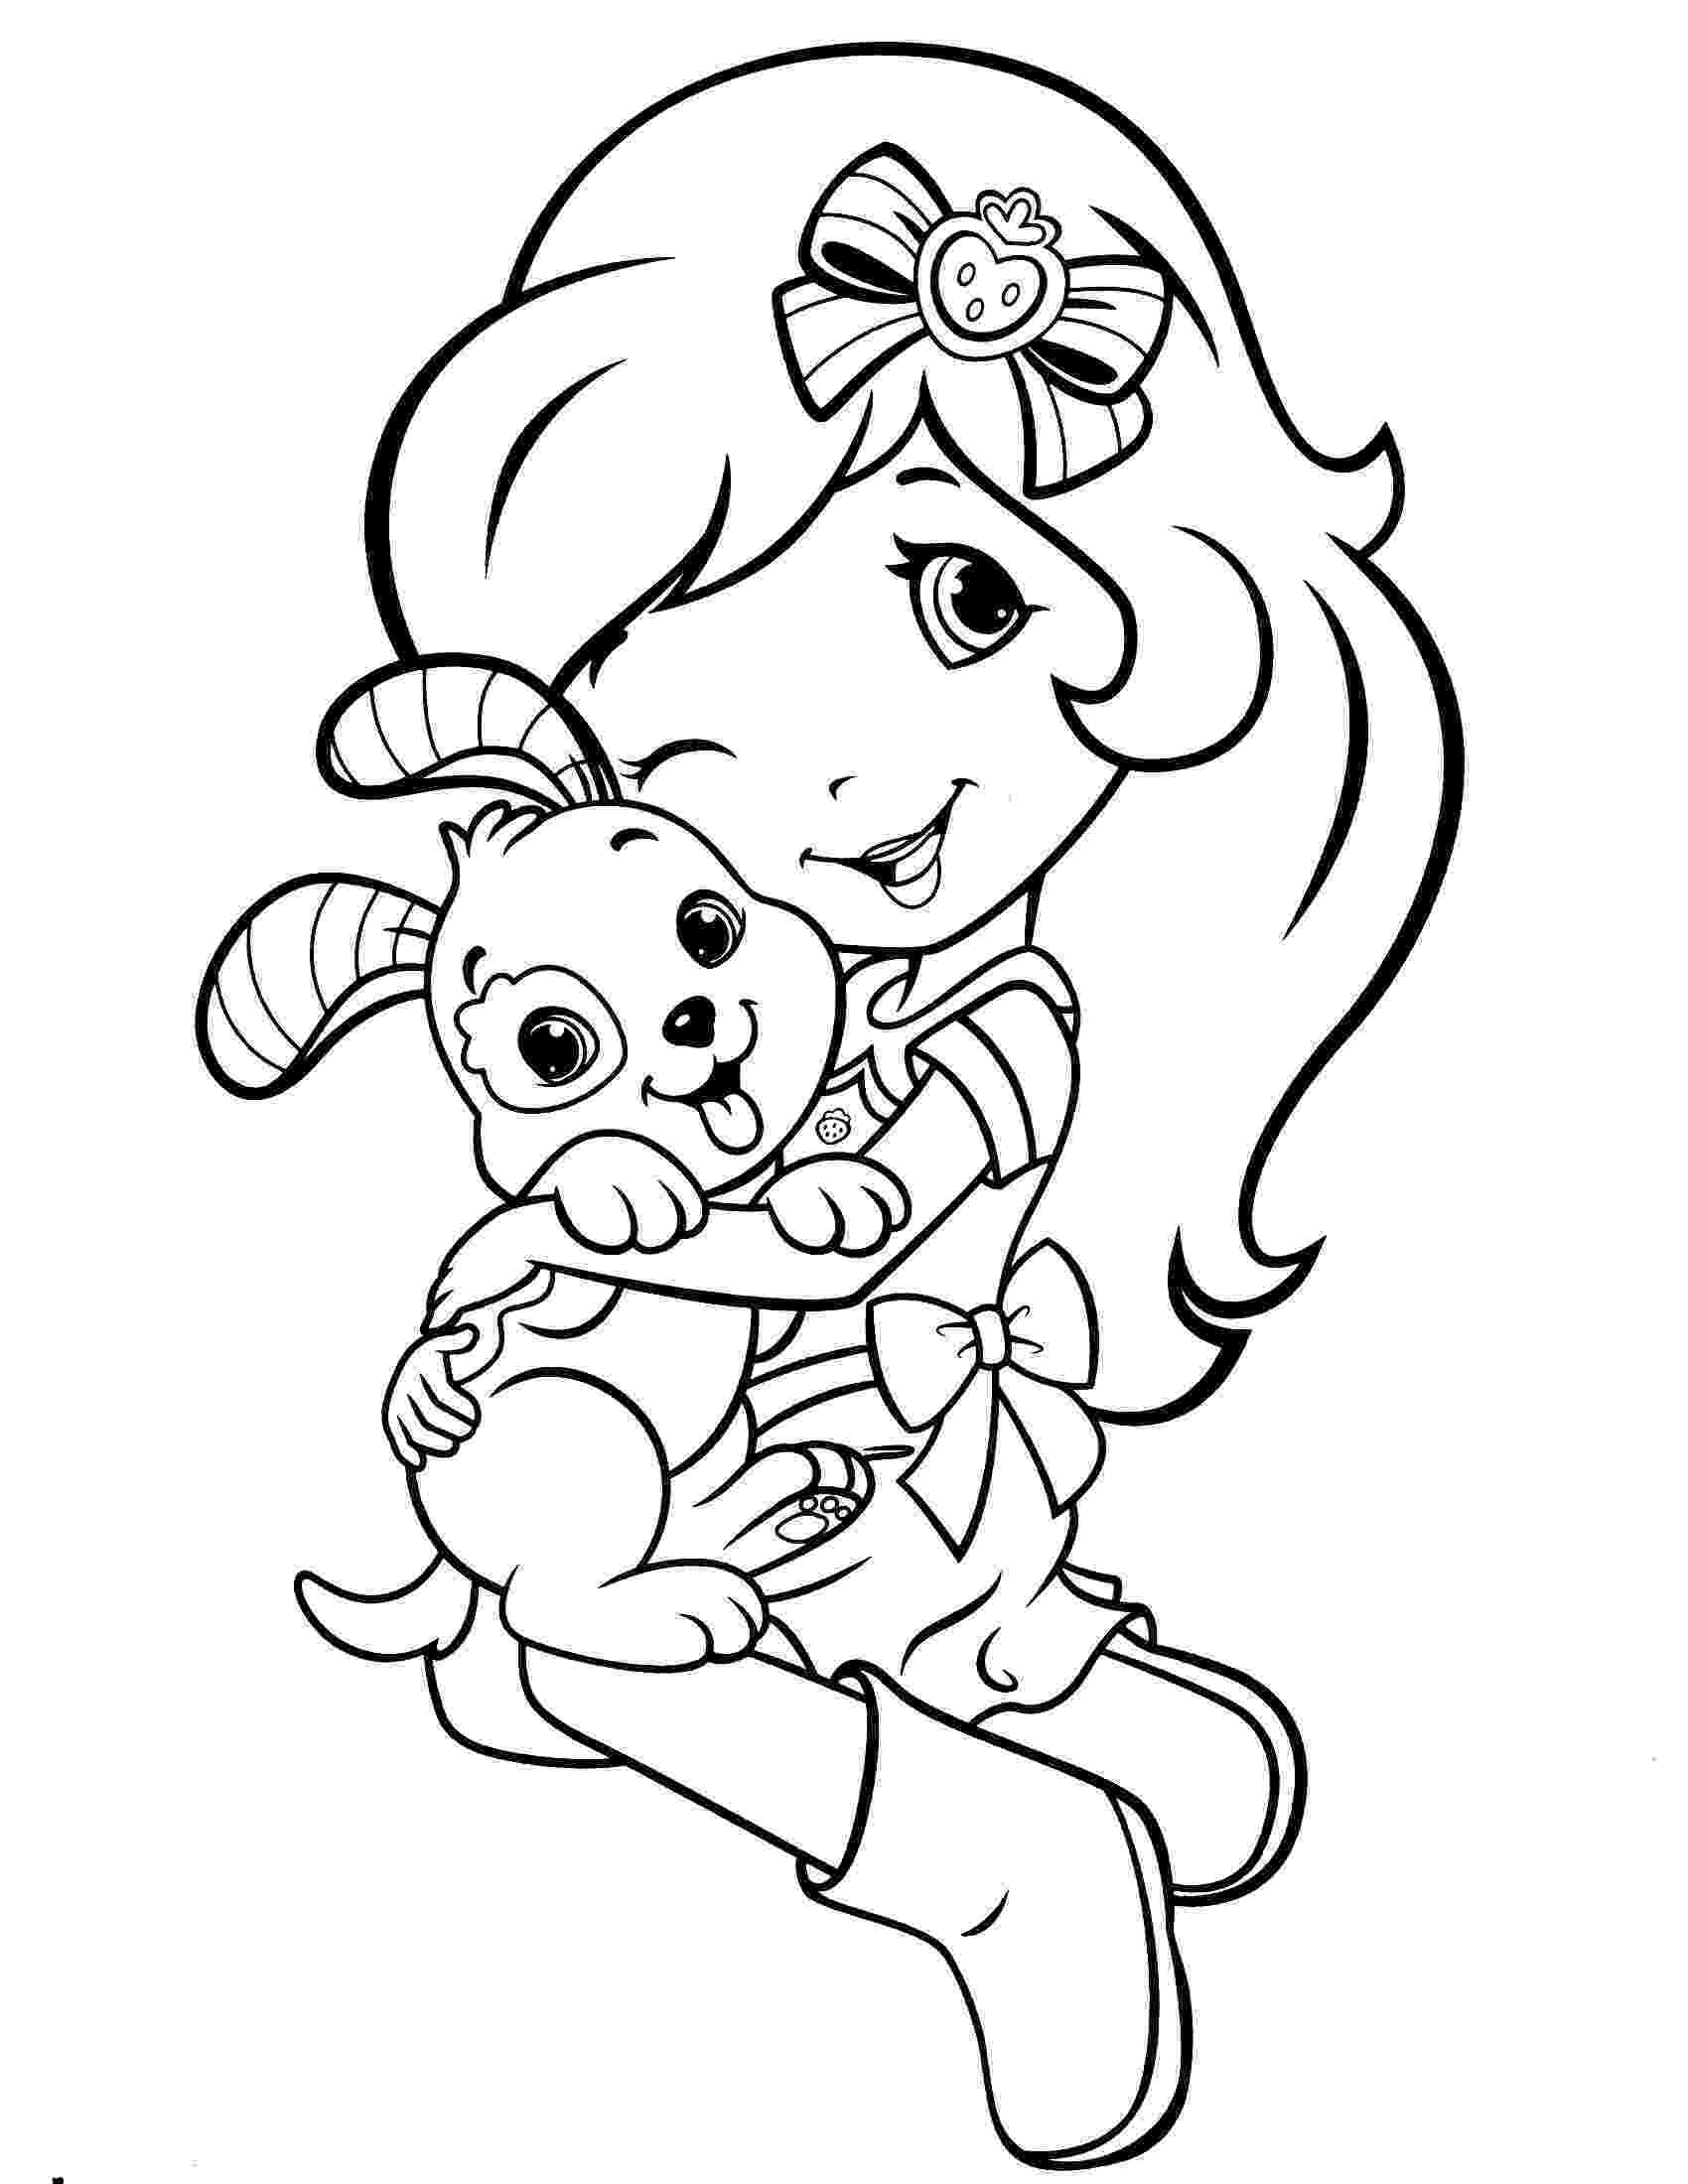 strawberry shortcake colouring sheets 17 best images about strawberry shortcake on pinterest colouring shortcake strawberry sheets